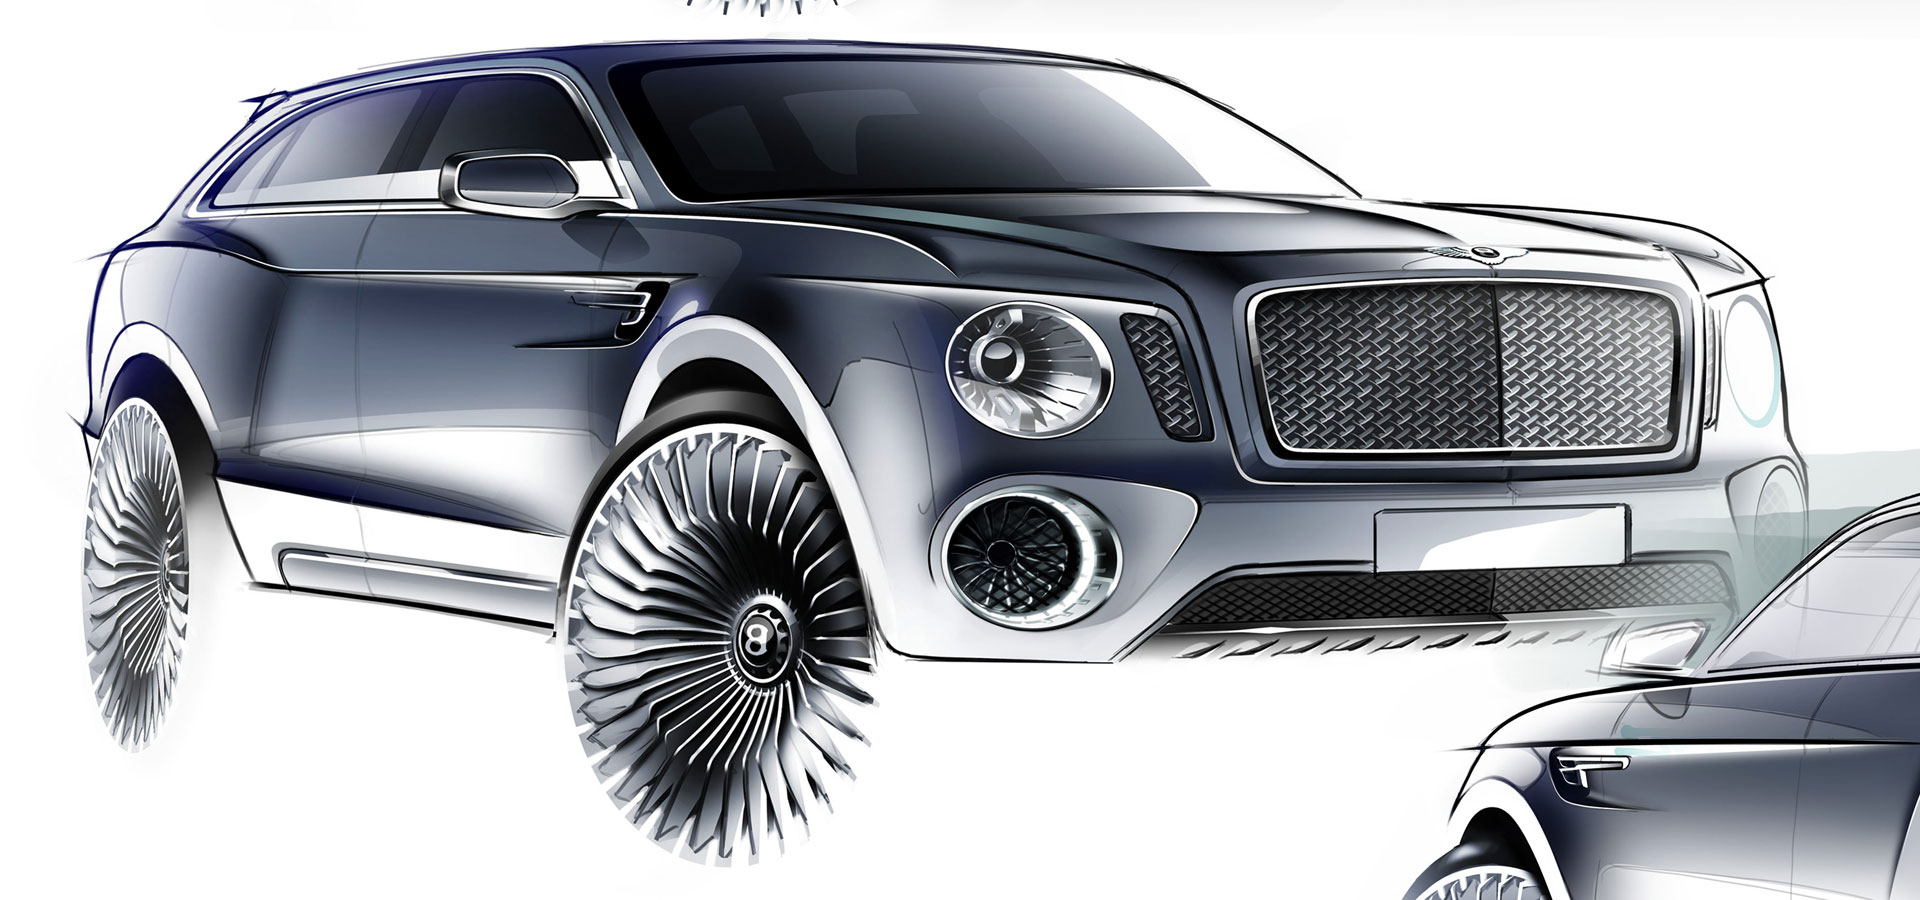 Bentley EXP 9 F Concept - Design Sketch - Car Body Design